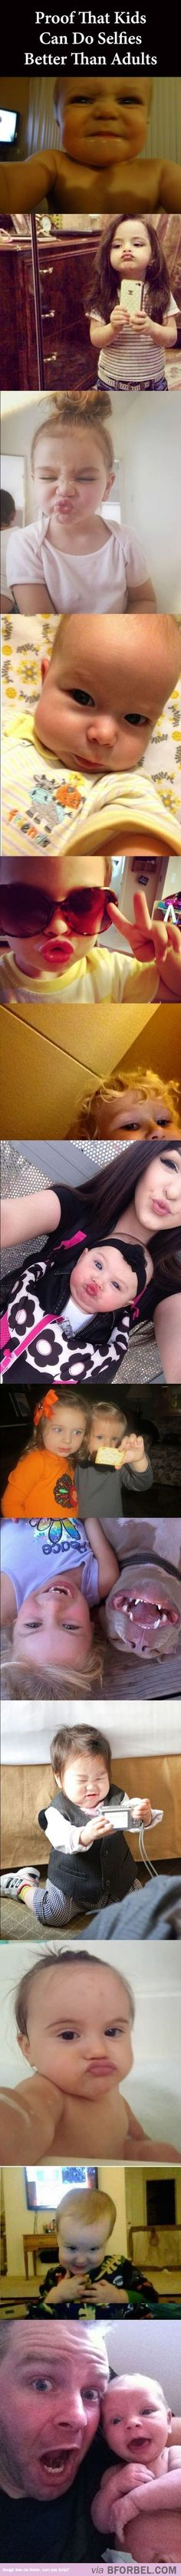 Babies can take selfies better than adults! Adorable!!